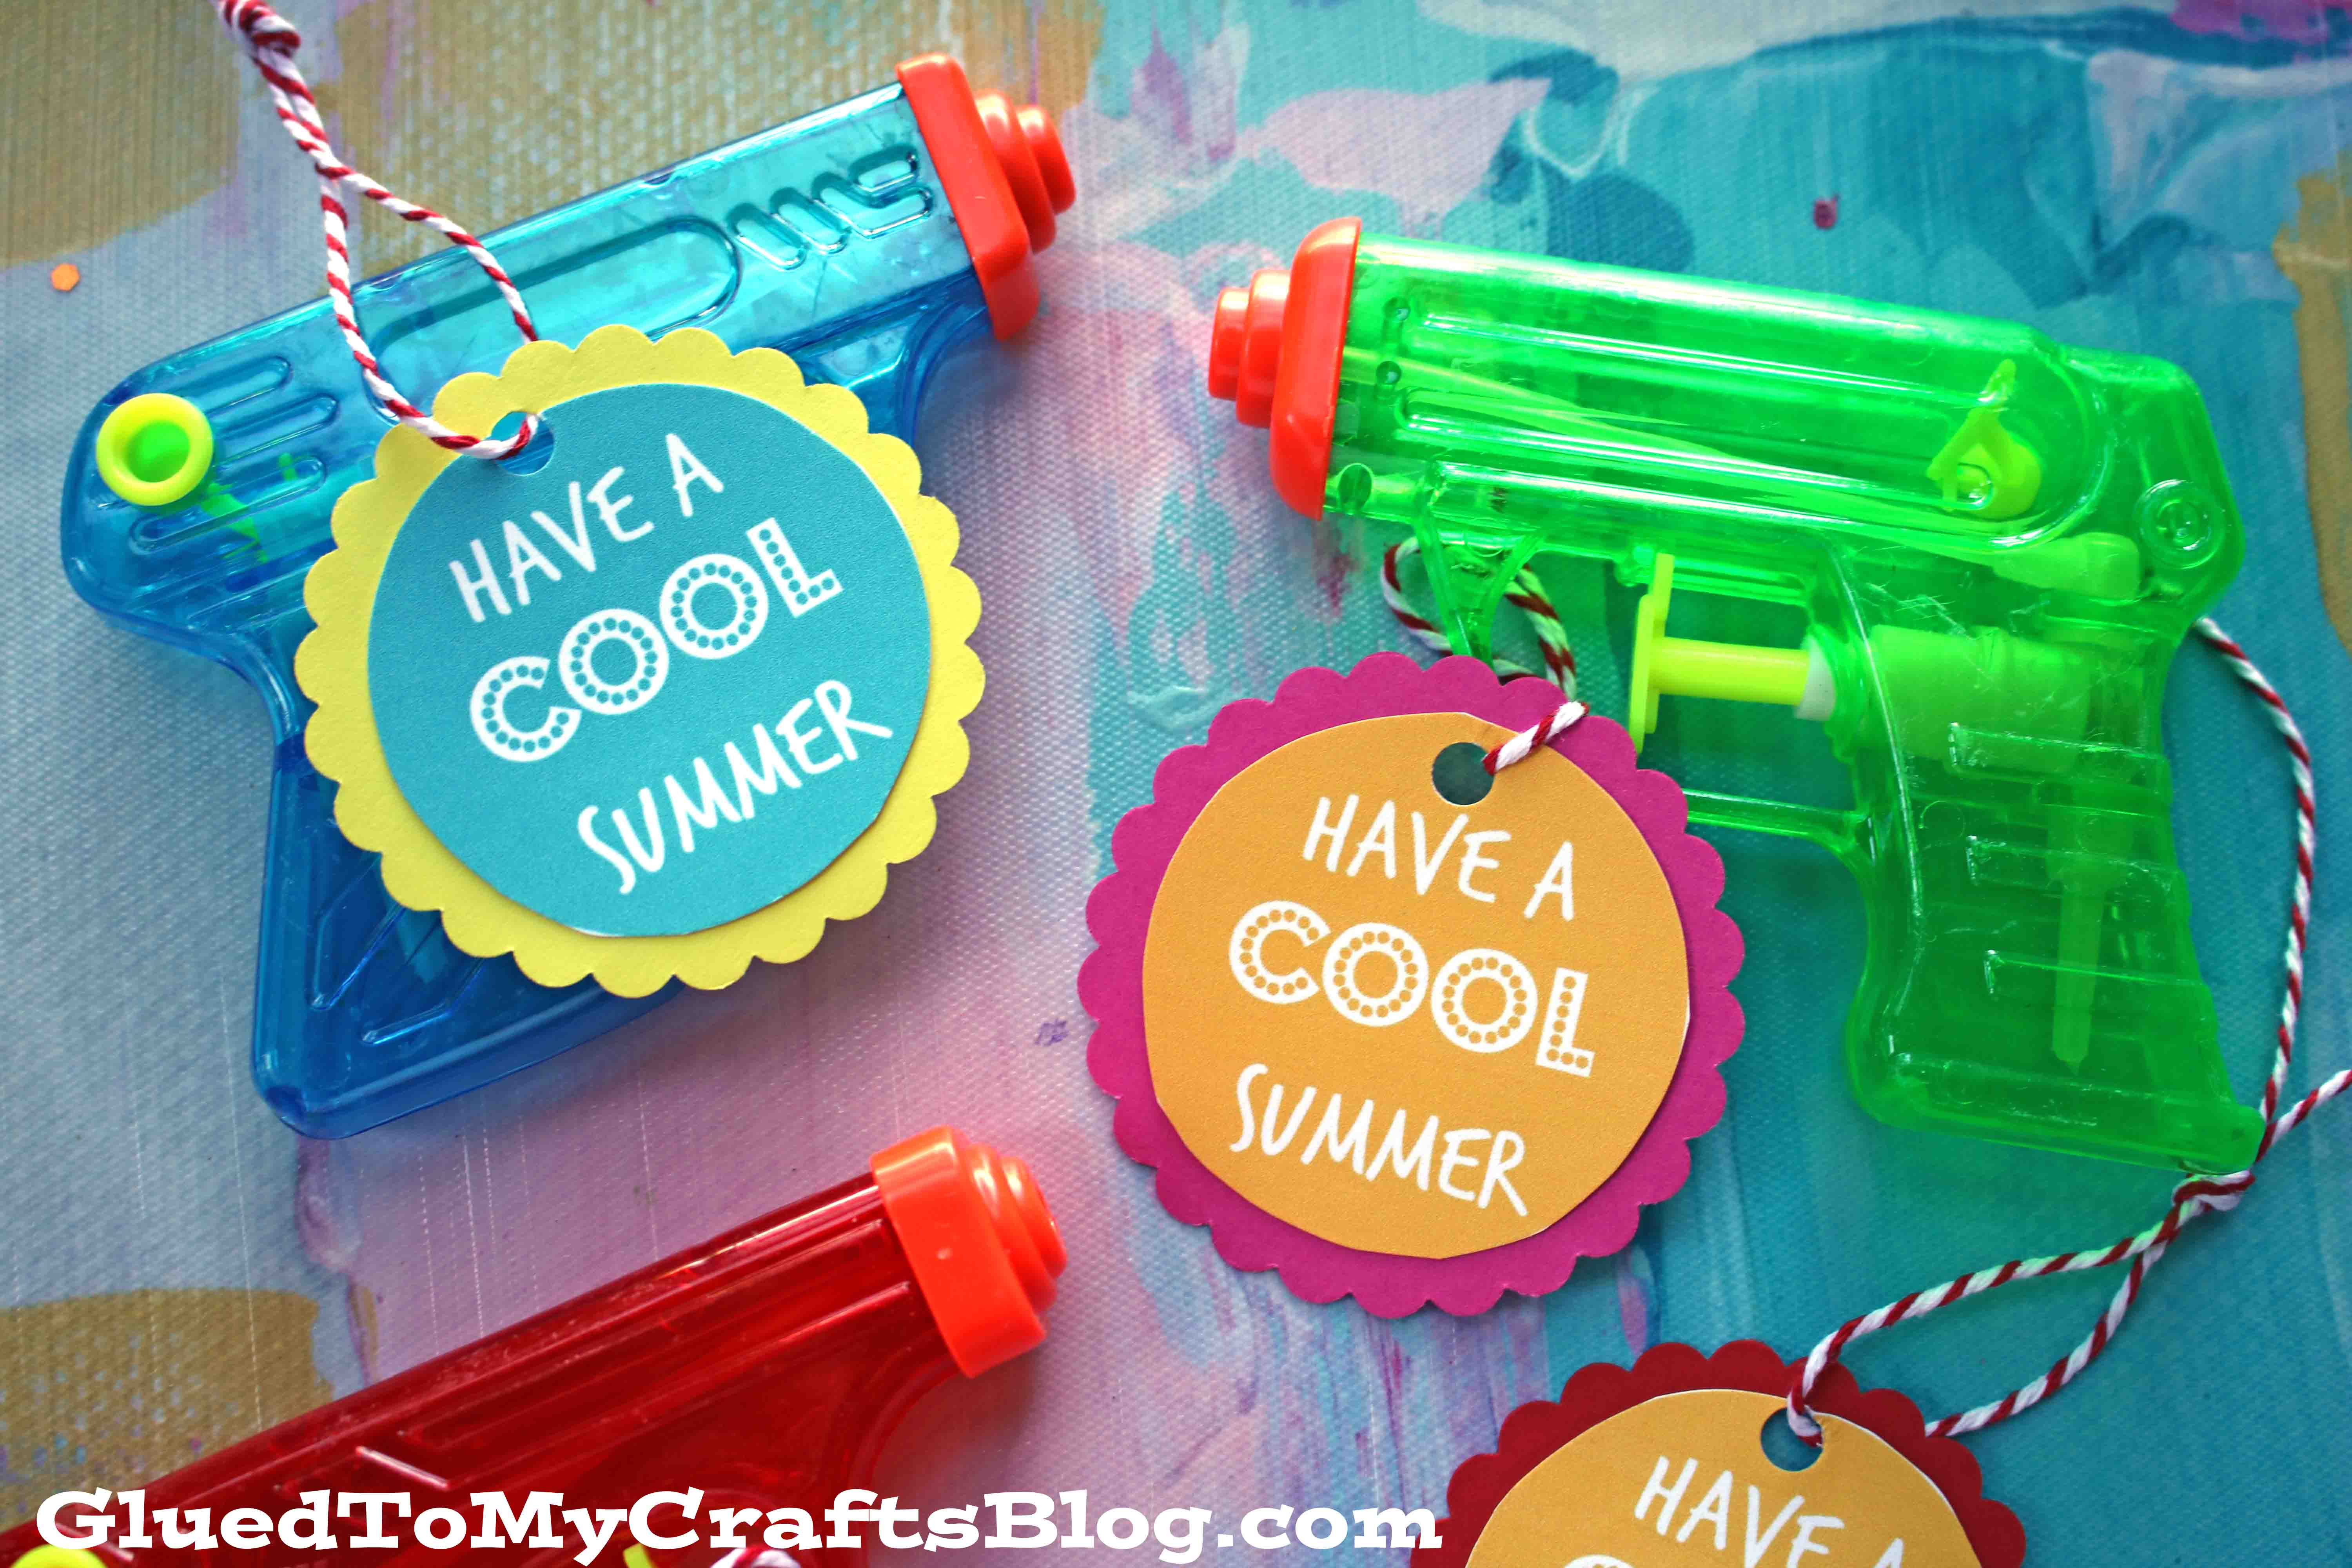 image regarding Have a Cool Summer Printable called Summertime Squirt Gun Tags Absolutely free Printable